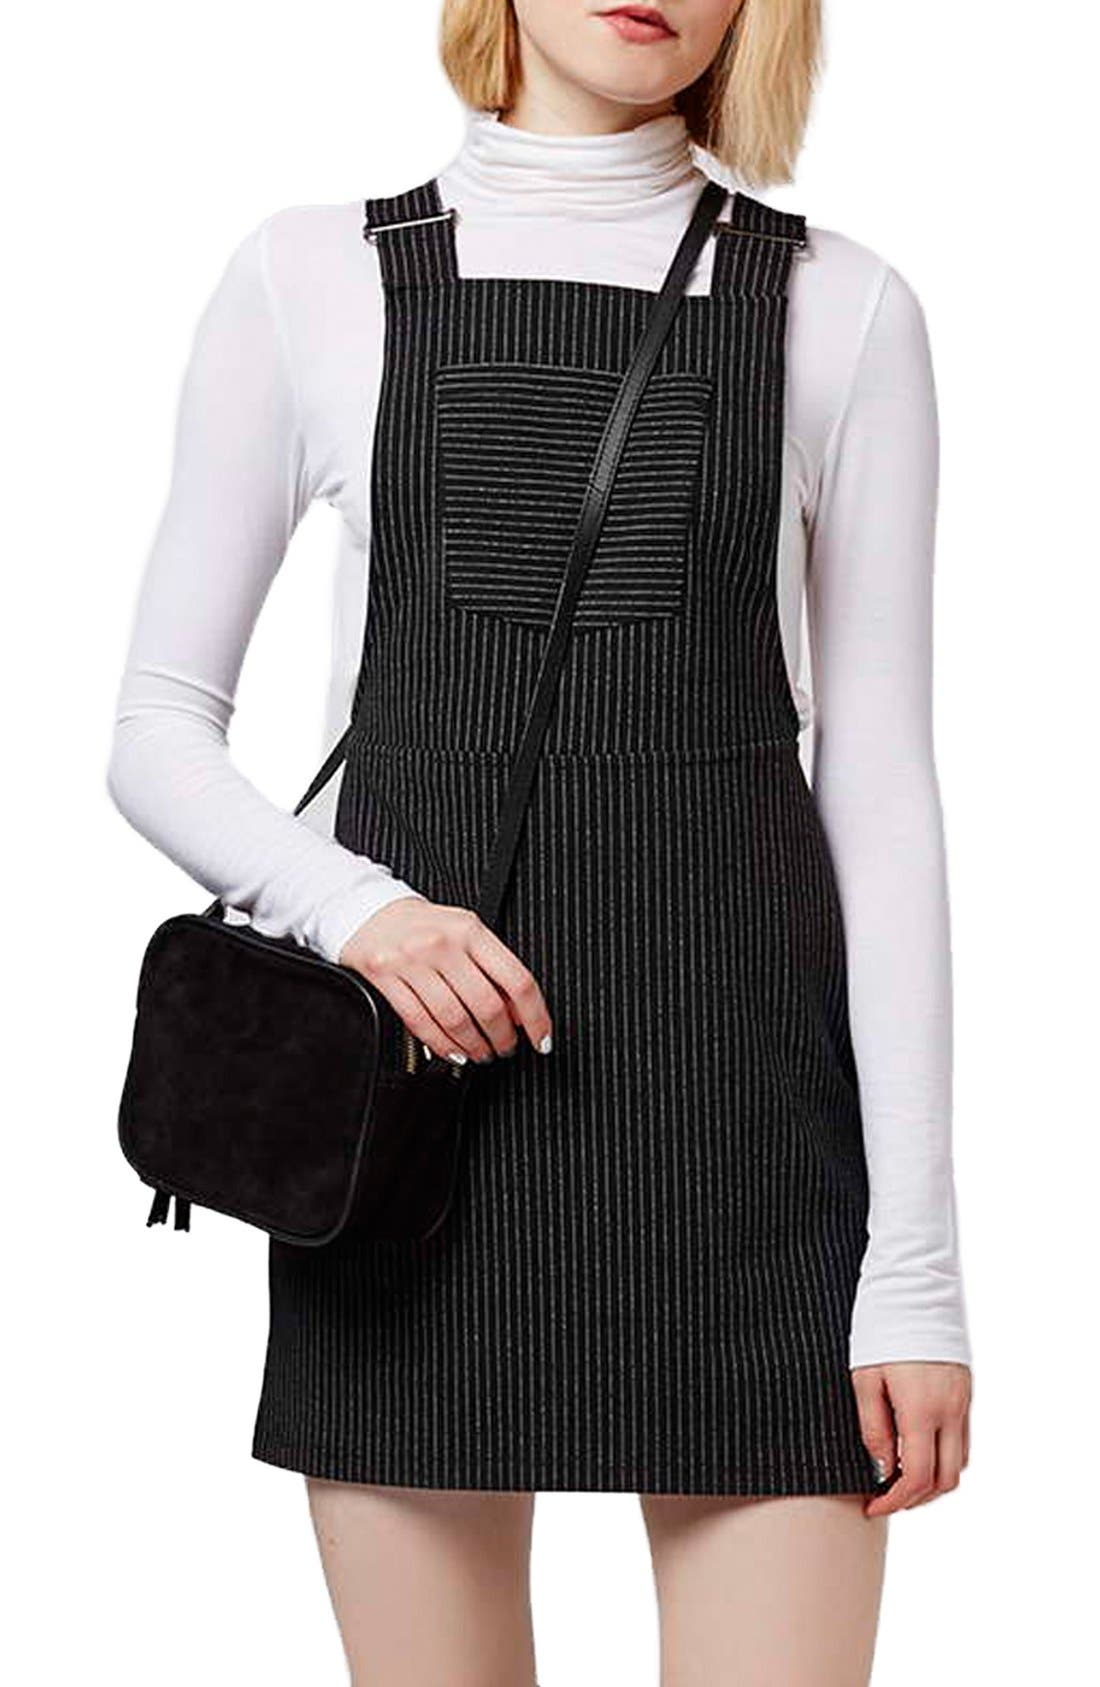 Alternate Image 1 Selected - Topshop Pinstripe Pinafore Dress